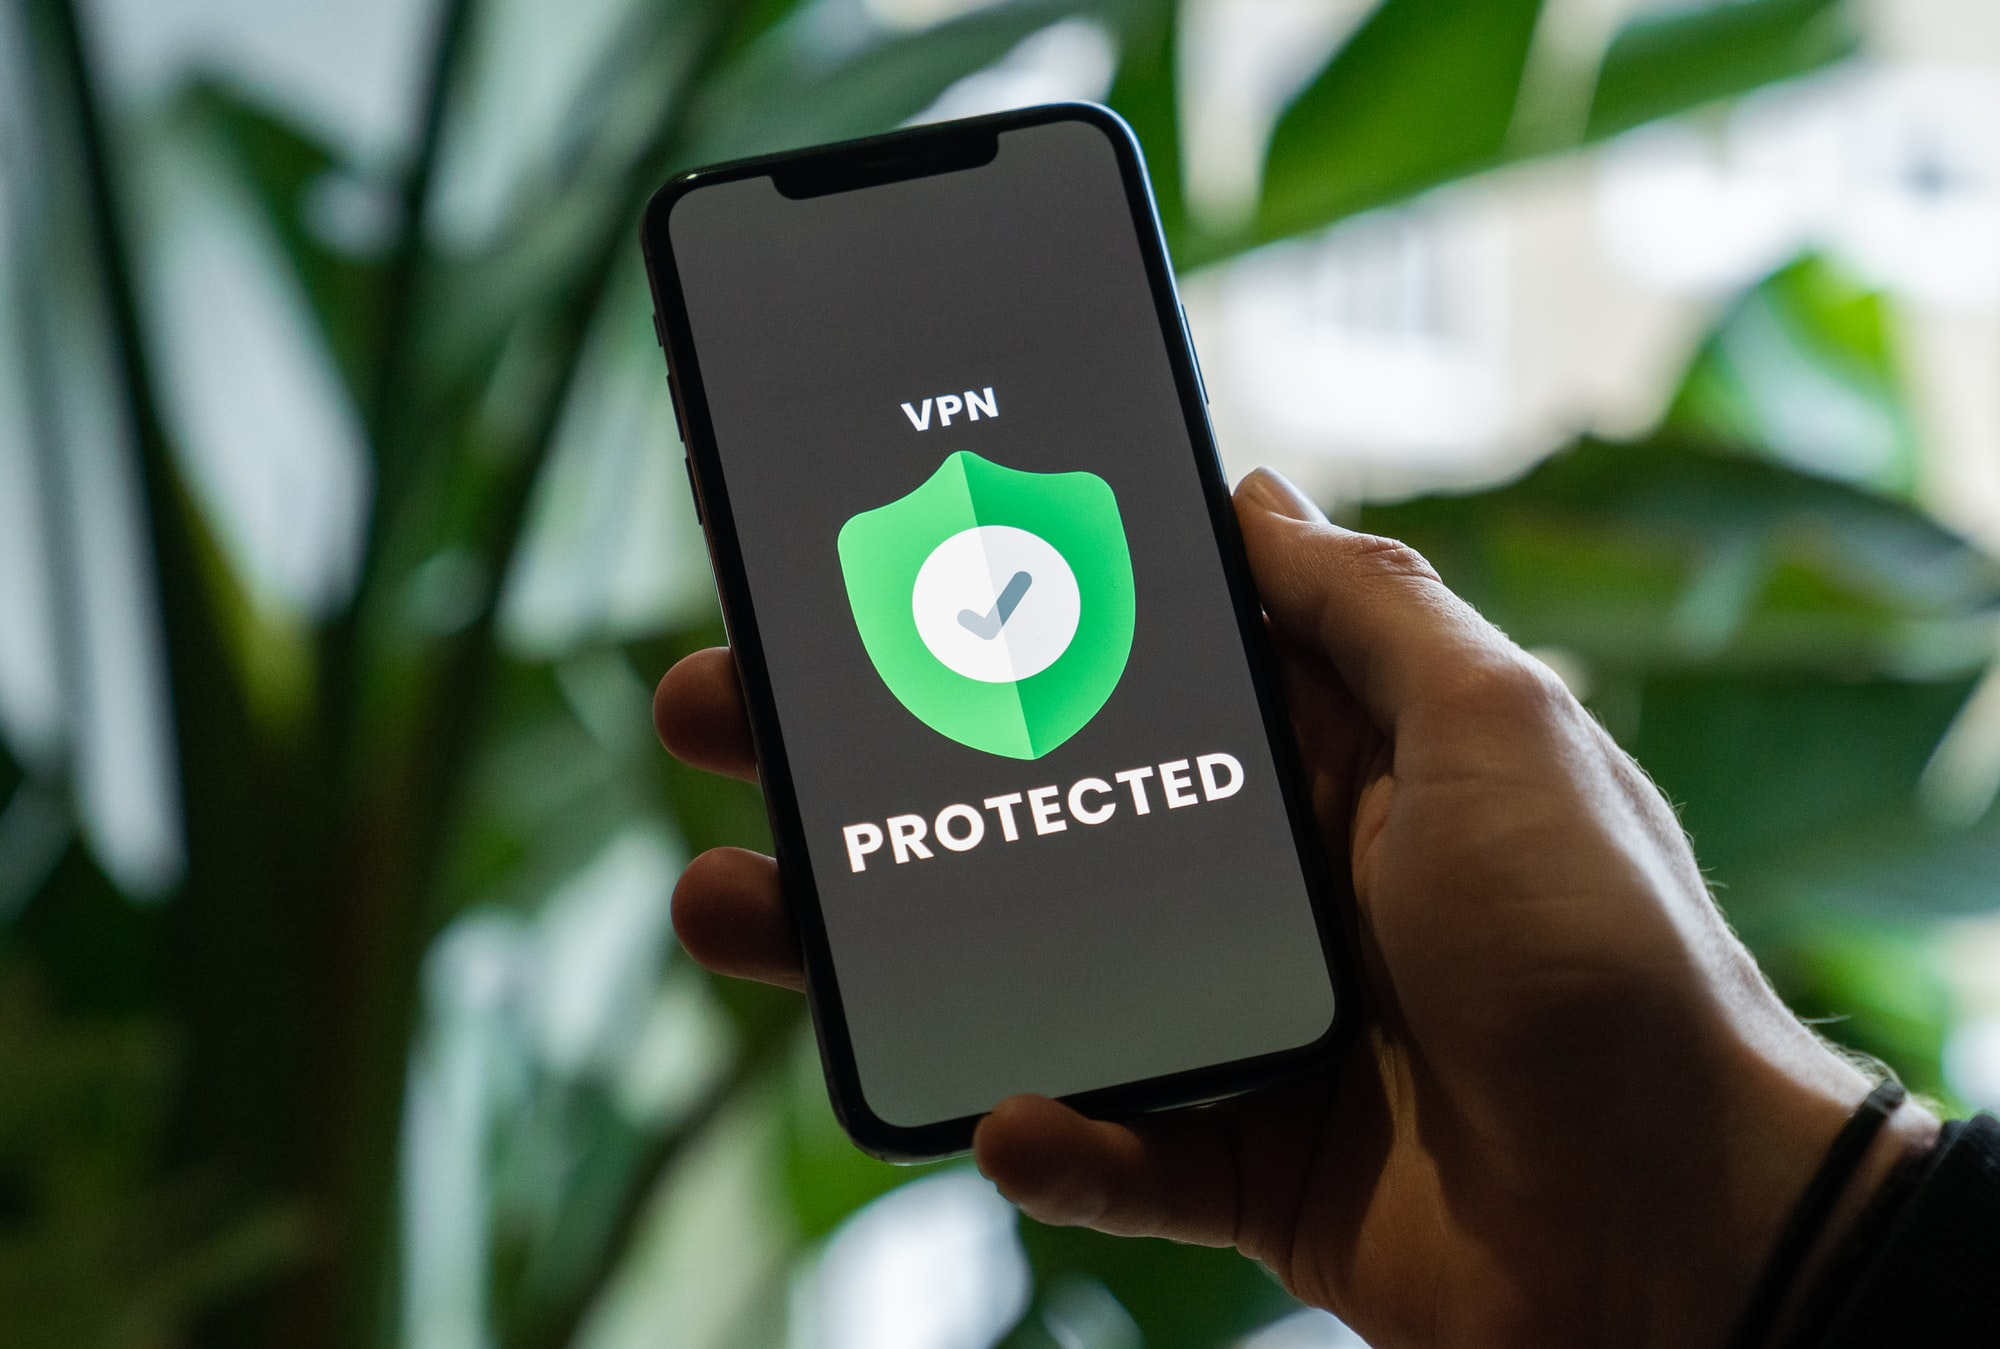 iPhone with VPN service enabled in hand